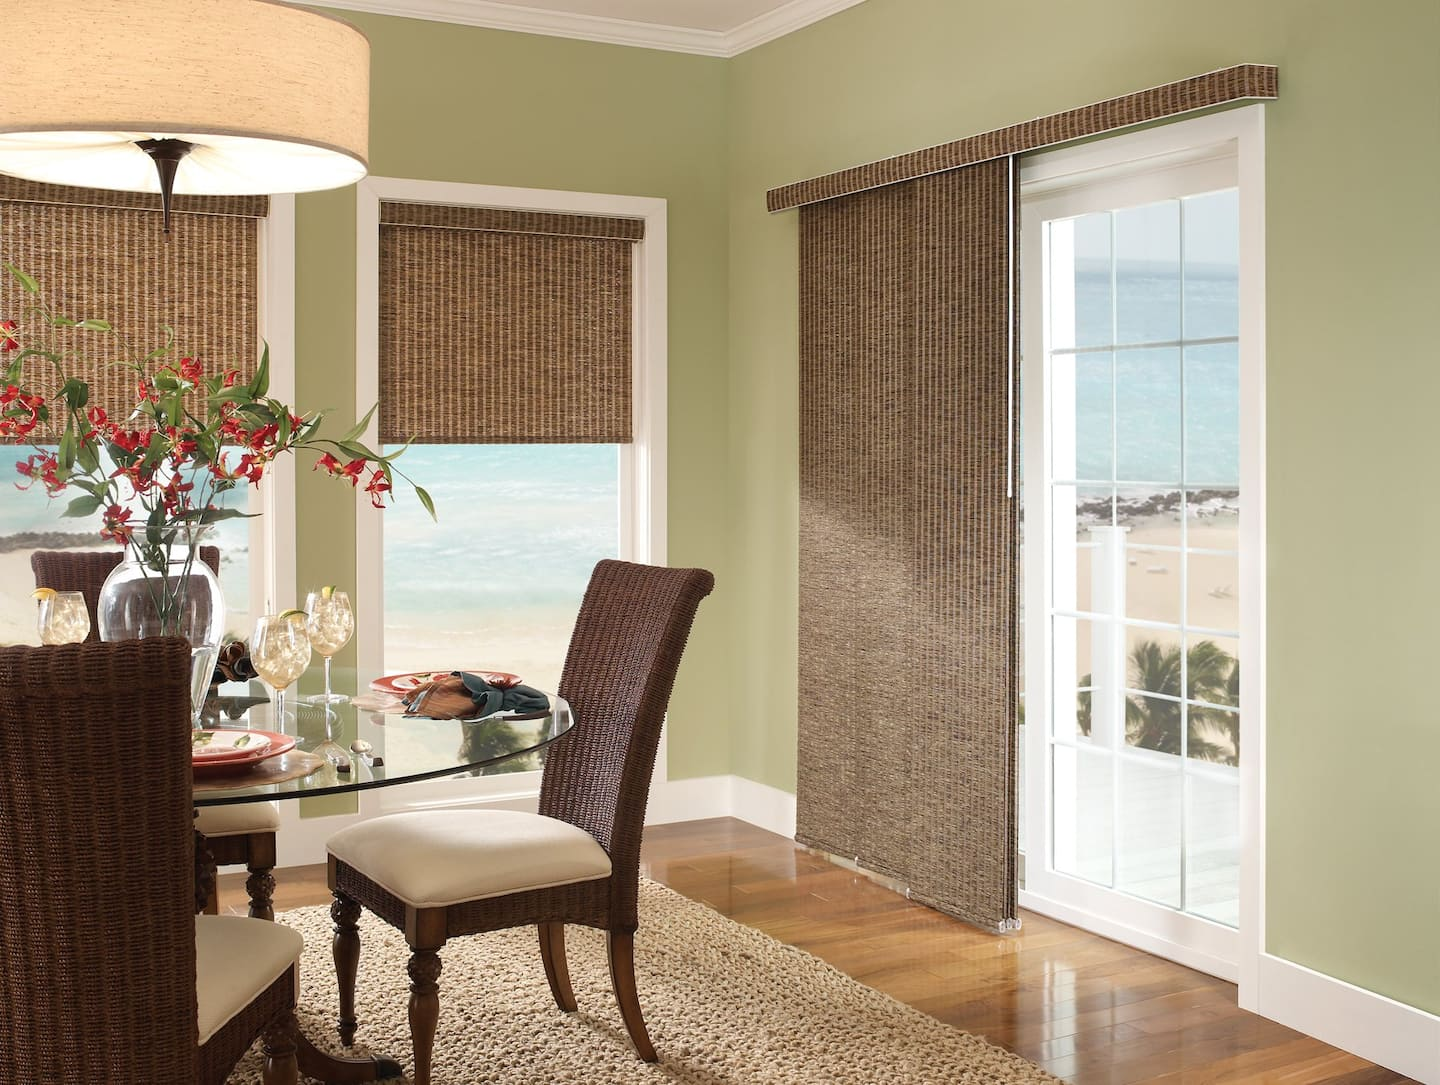 Waterfront dining room with panel track blinds over large windows and sliding glass door